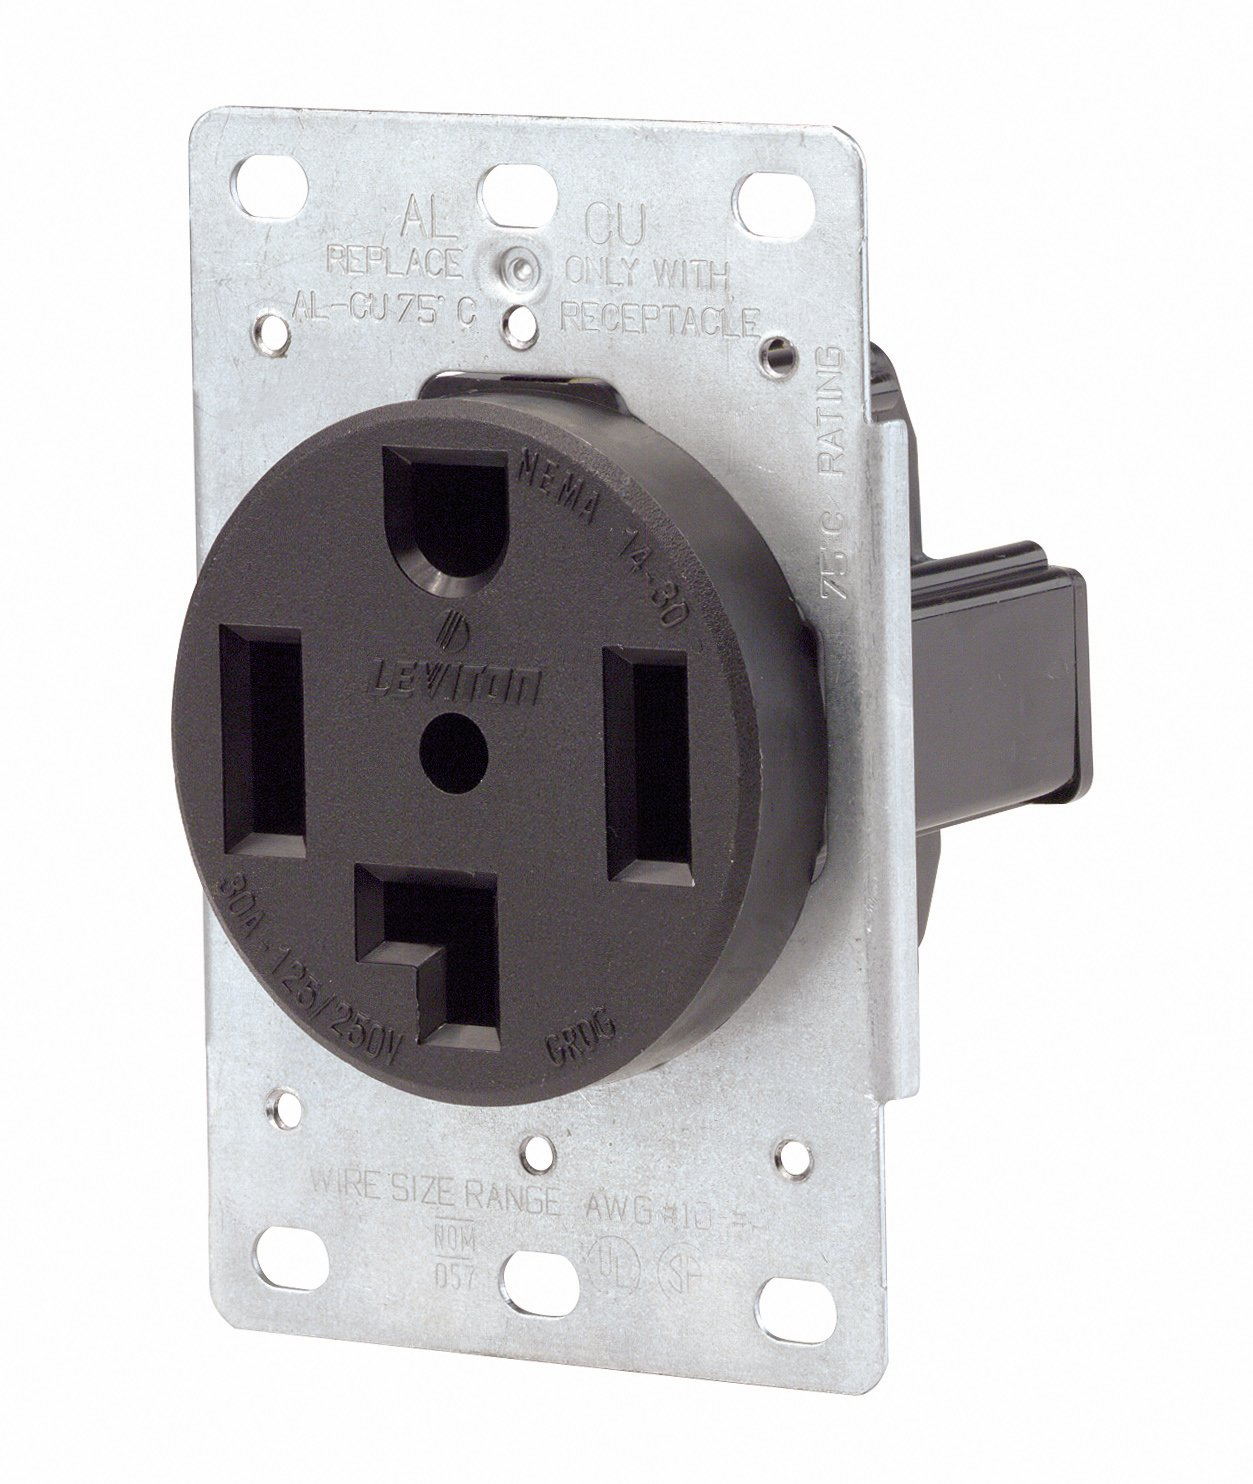 Leviton 071 00278 000 4 Wire 30 Amp 250 Volt Flush Mount Dryer Outlet Wiring Further 240 3 Wires On Receptacle Range Plug Receptacles